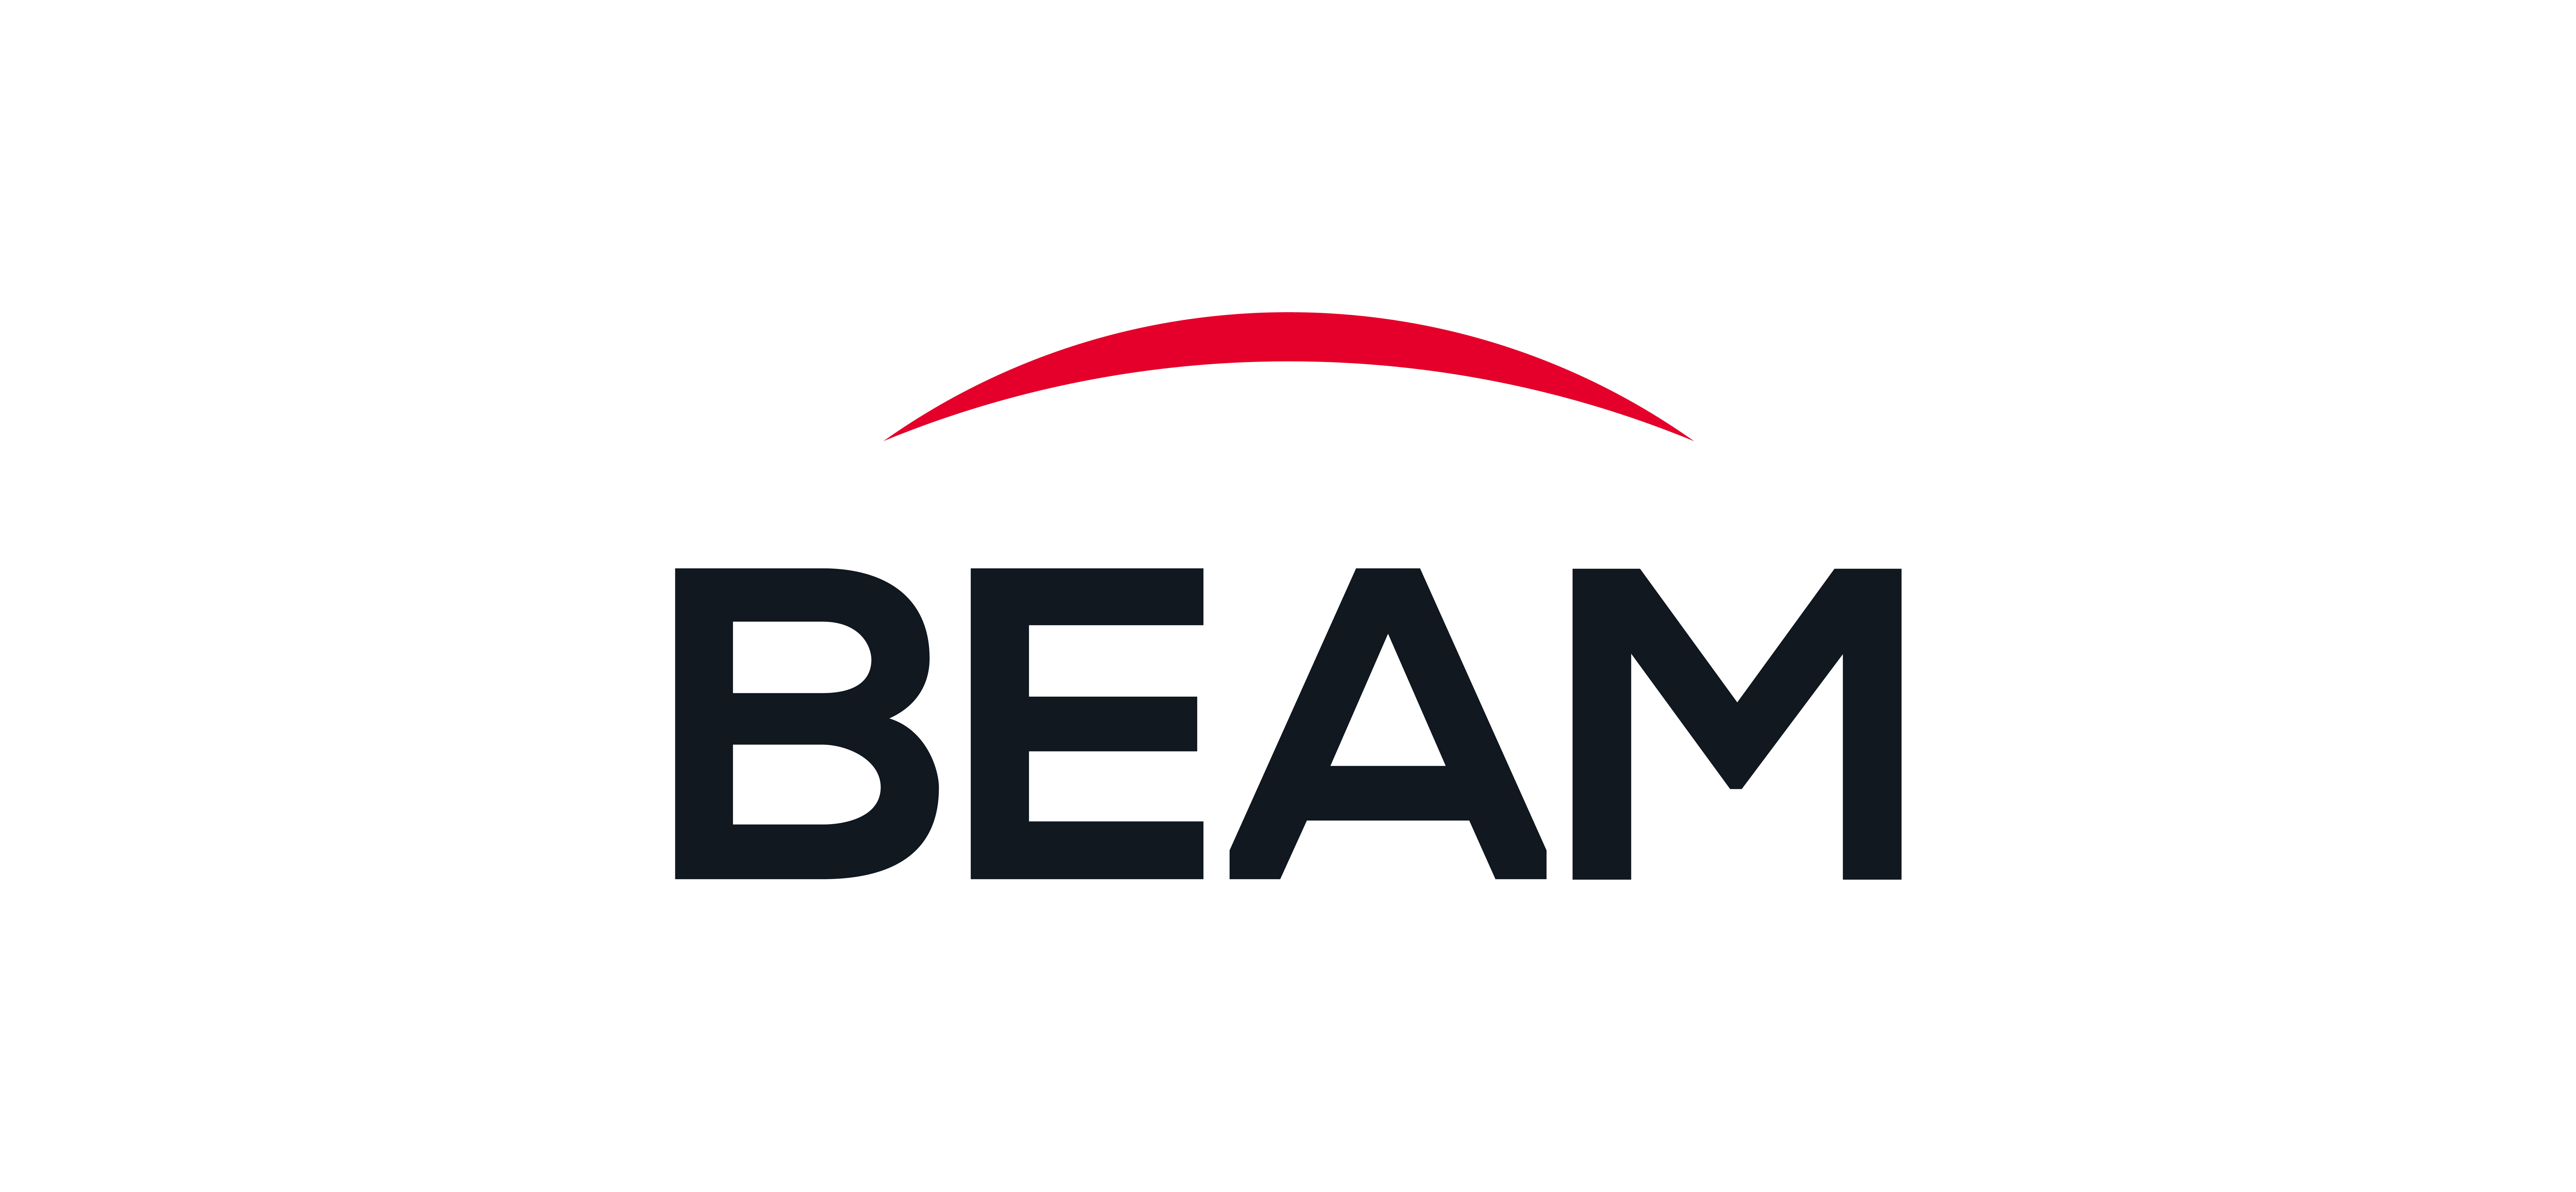 What's New in Beam? May 2020 Product Update